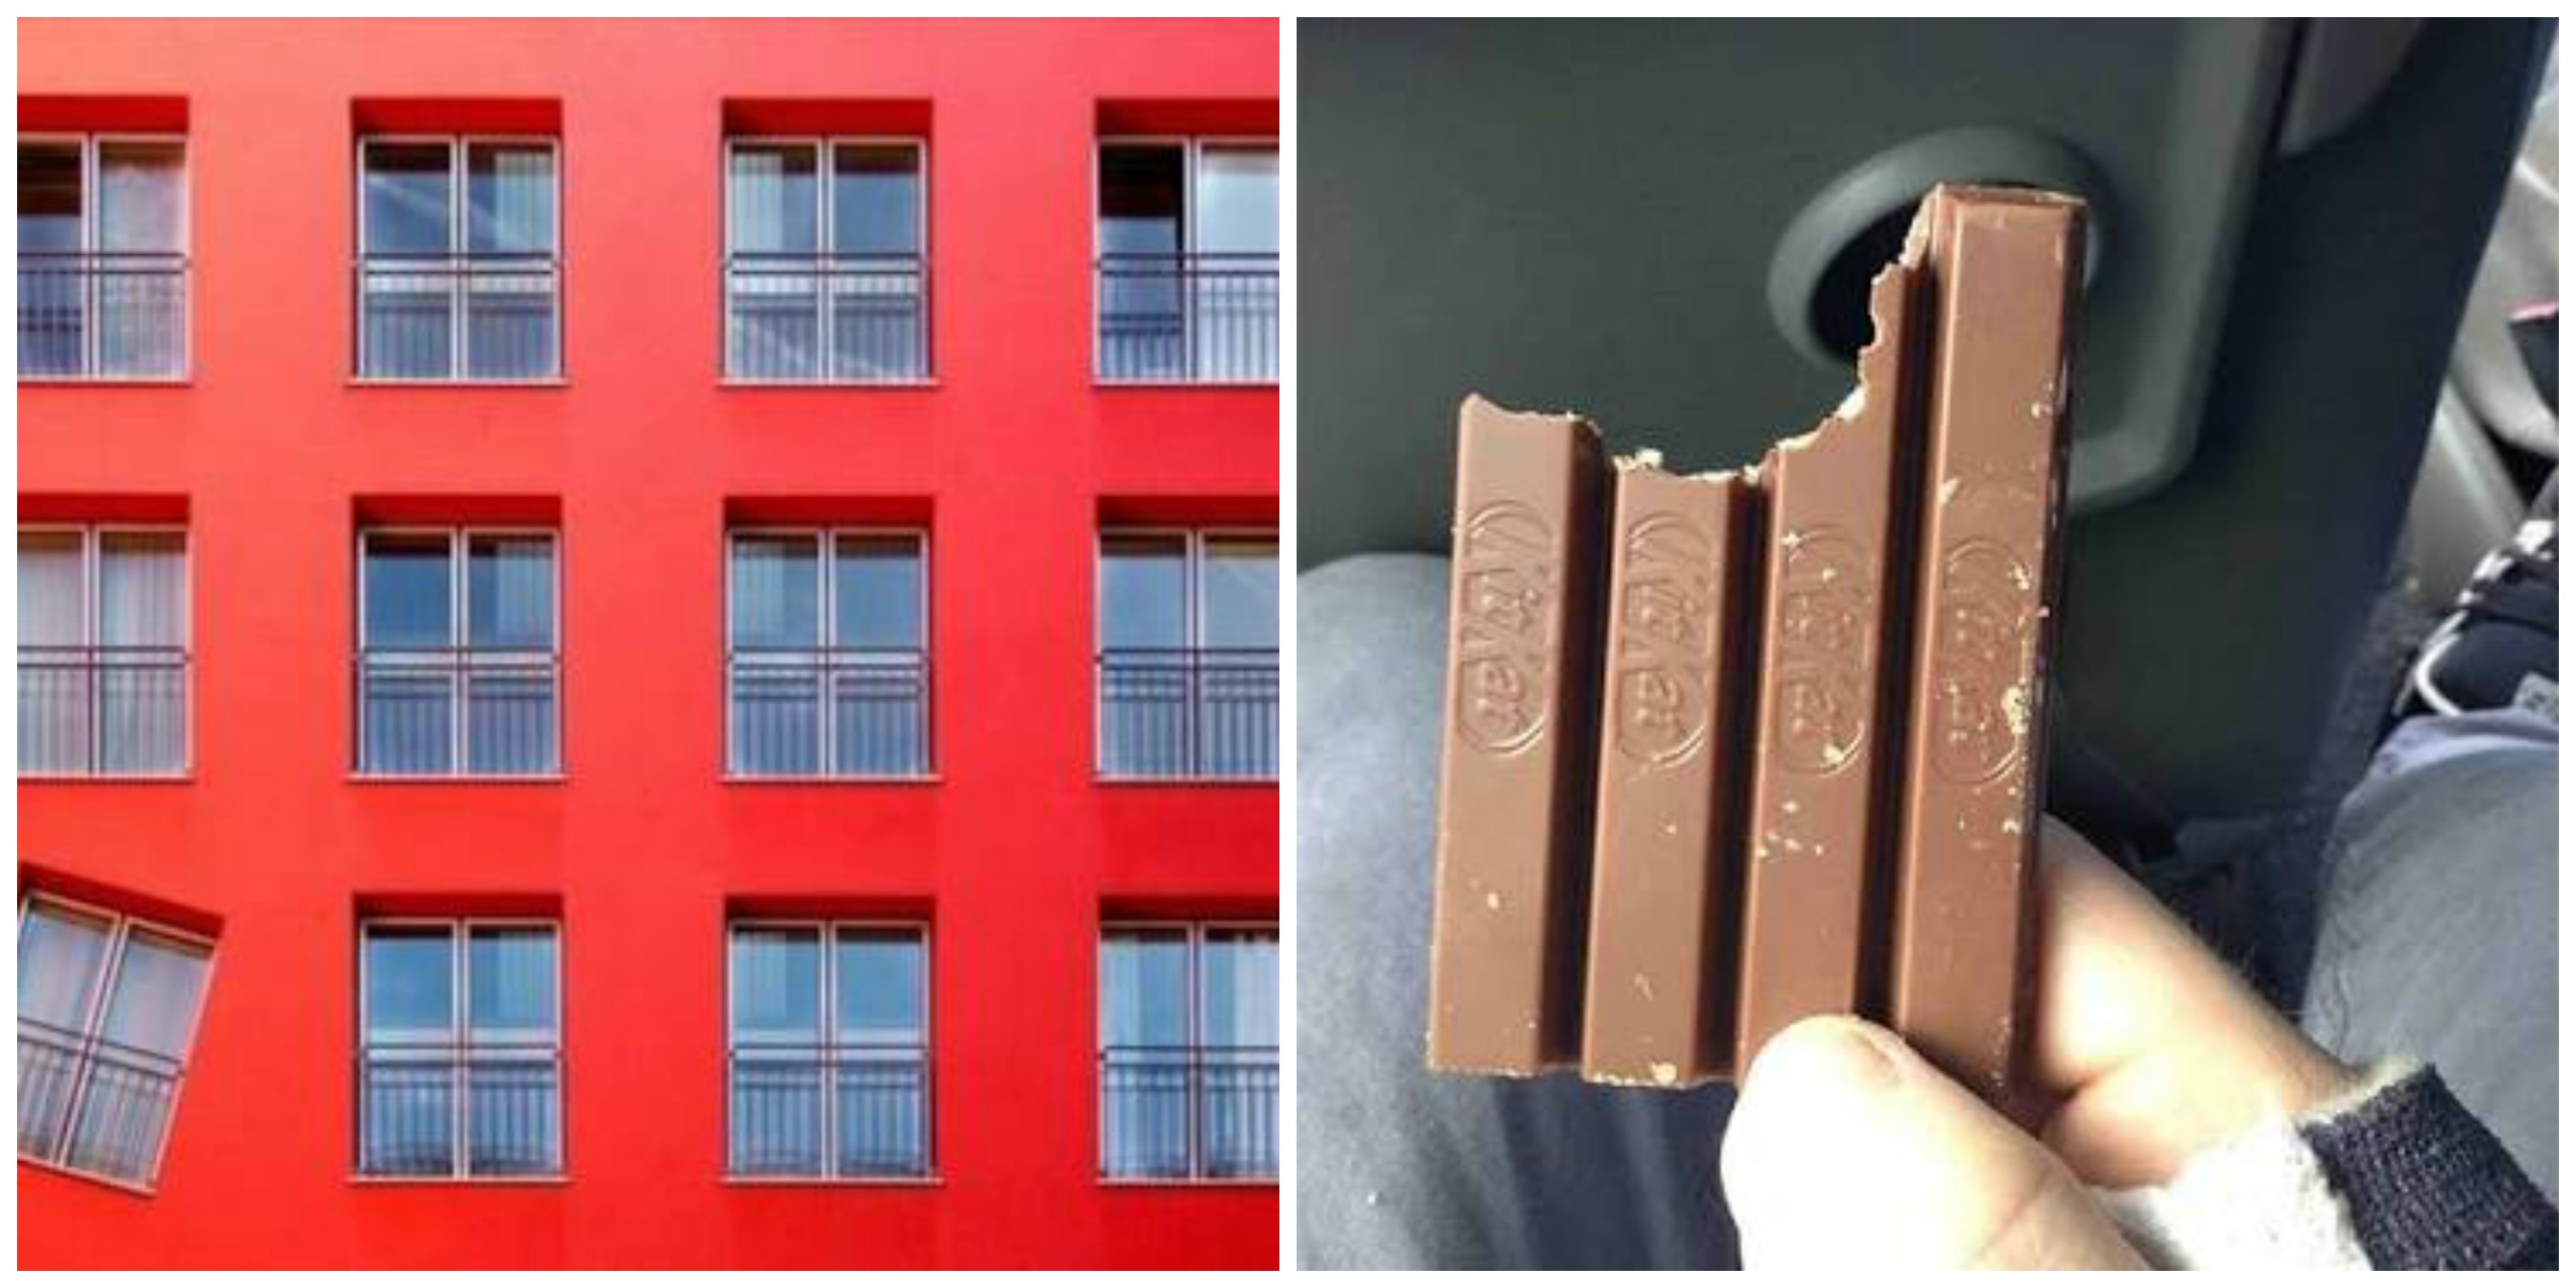 The Ocd Picture Test You Simply Must Take